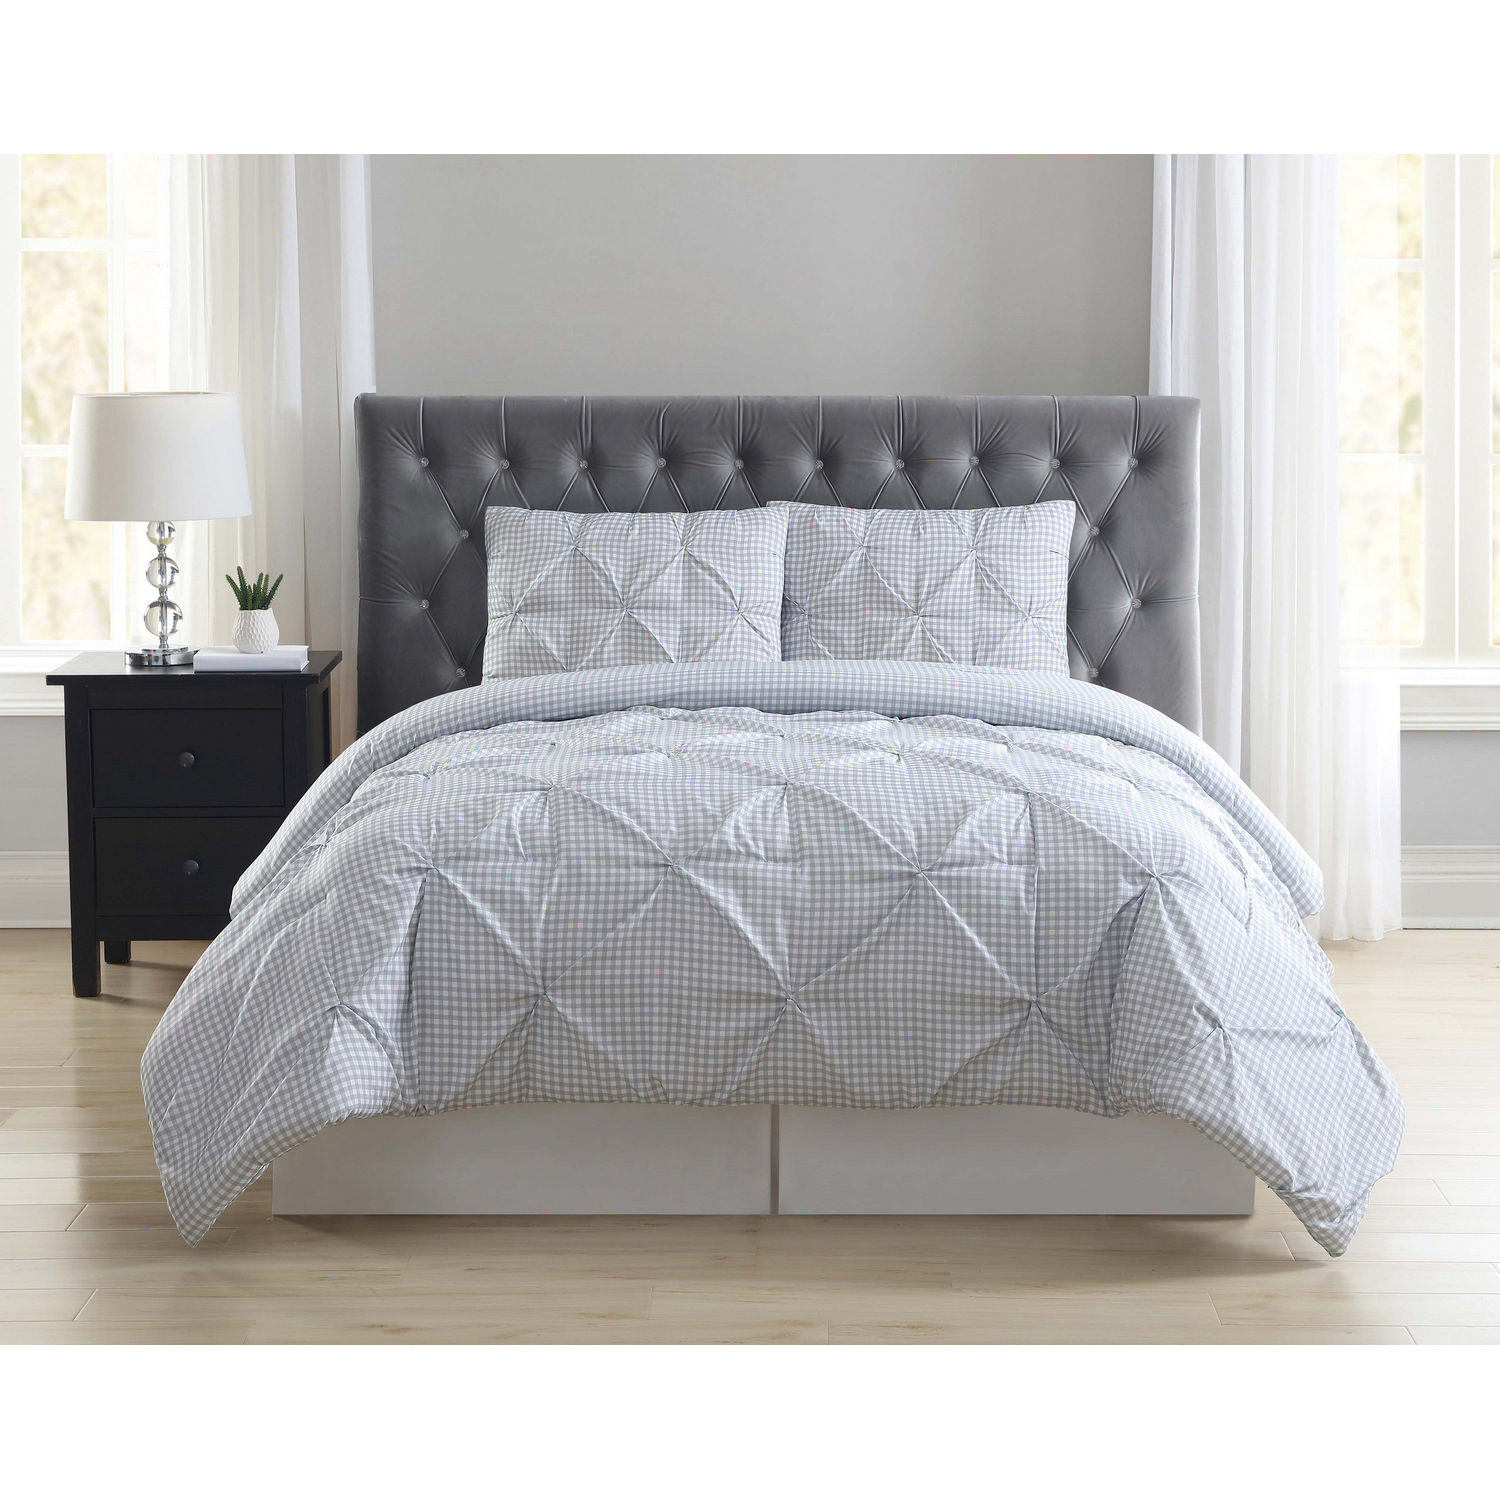 Truly Soft Everyday Gingham Pleat Gray Twin Duvet Set